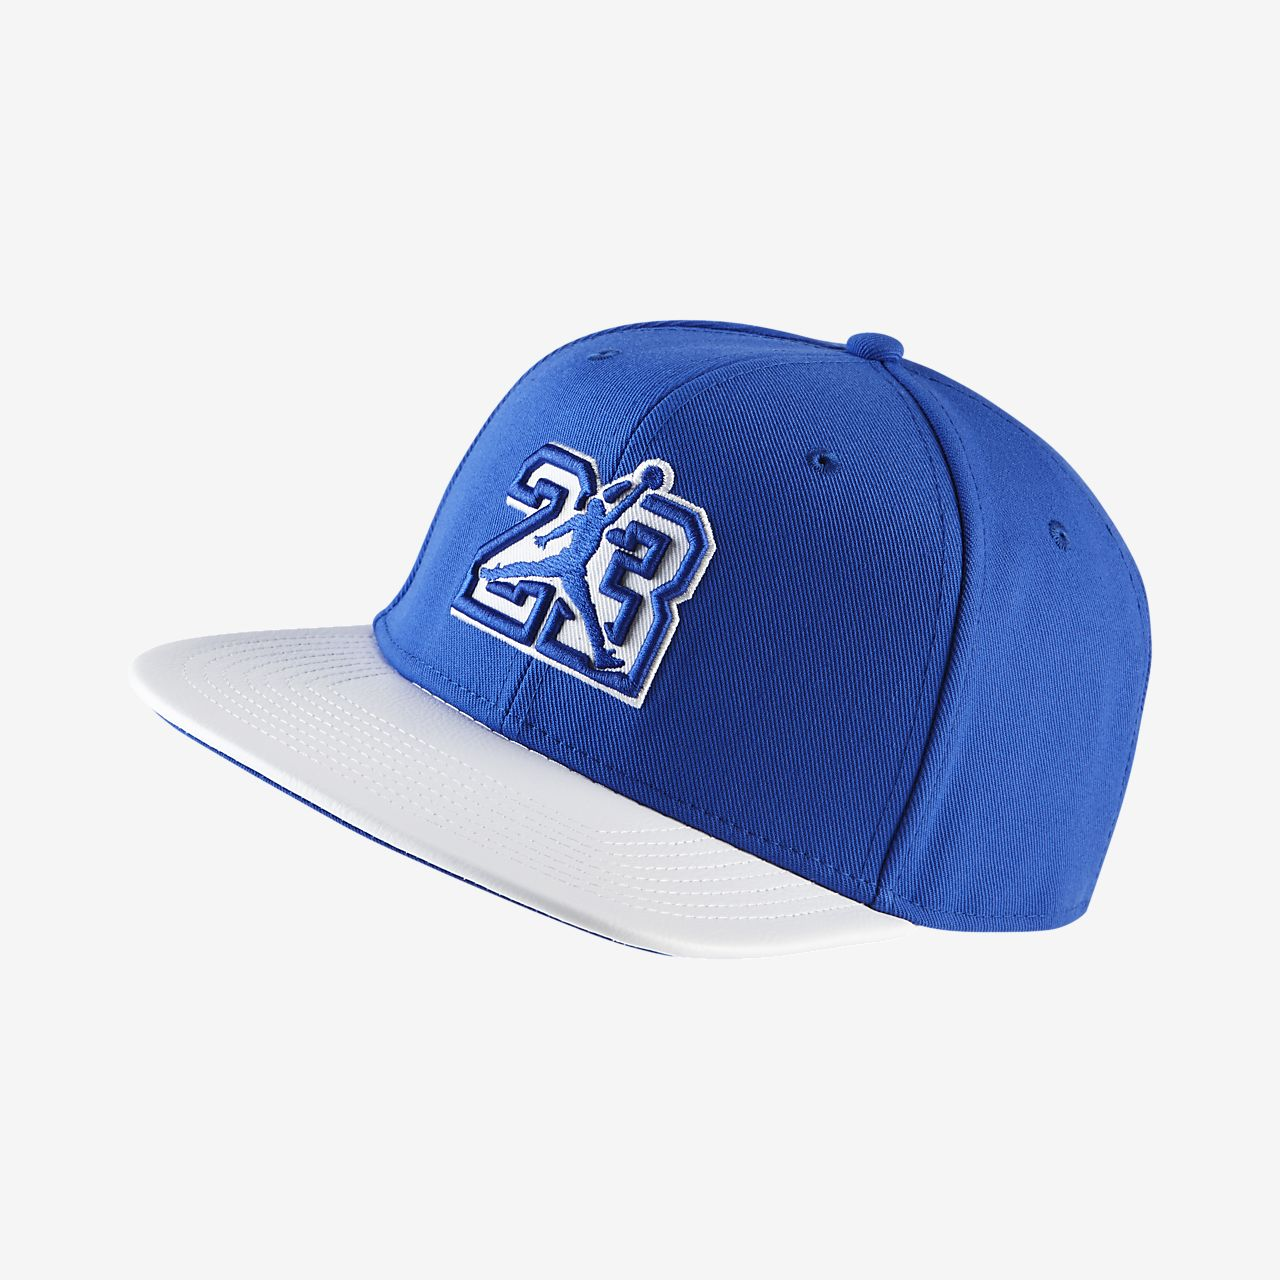 purchase cheap aea2a ebce2 Jordan Pro 'He Got Game' XIII Adjustable Hat